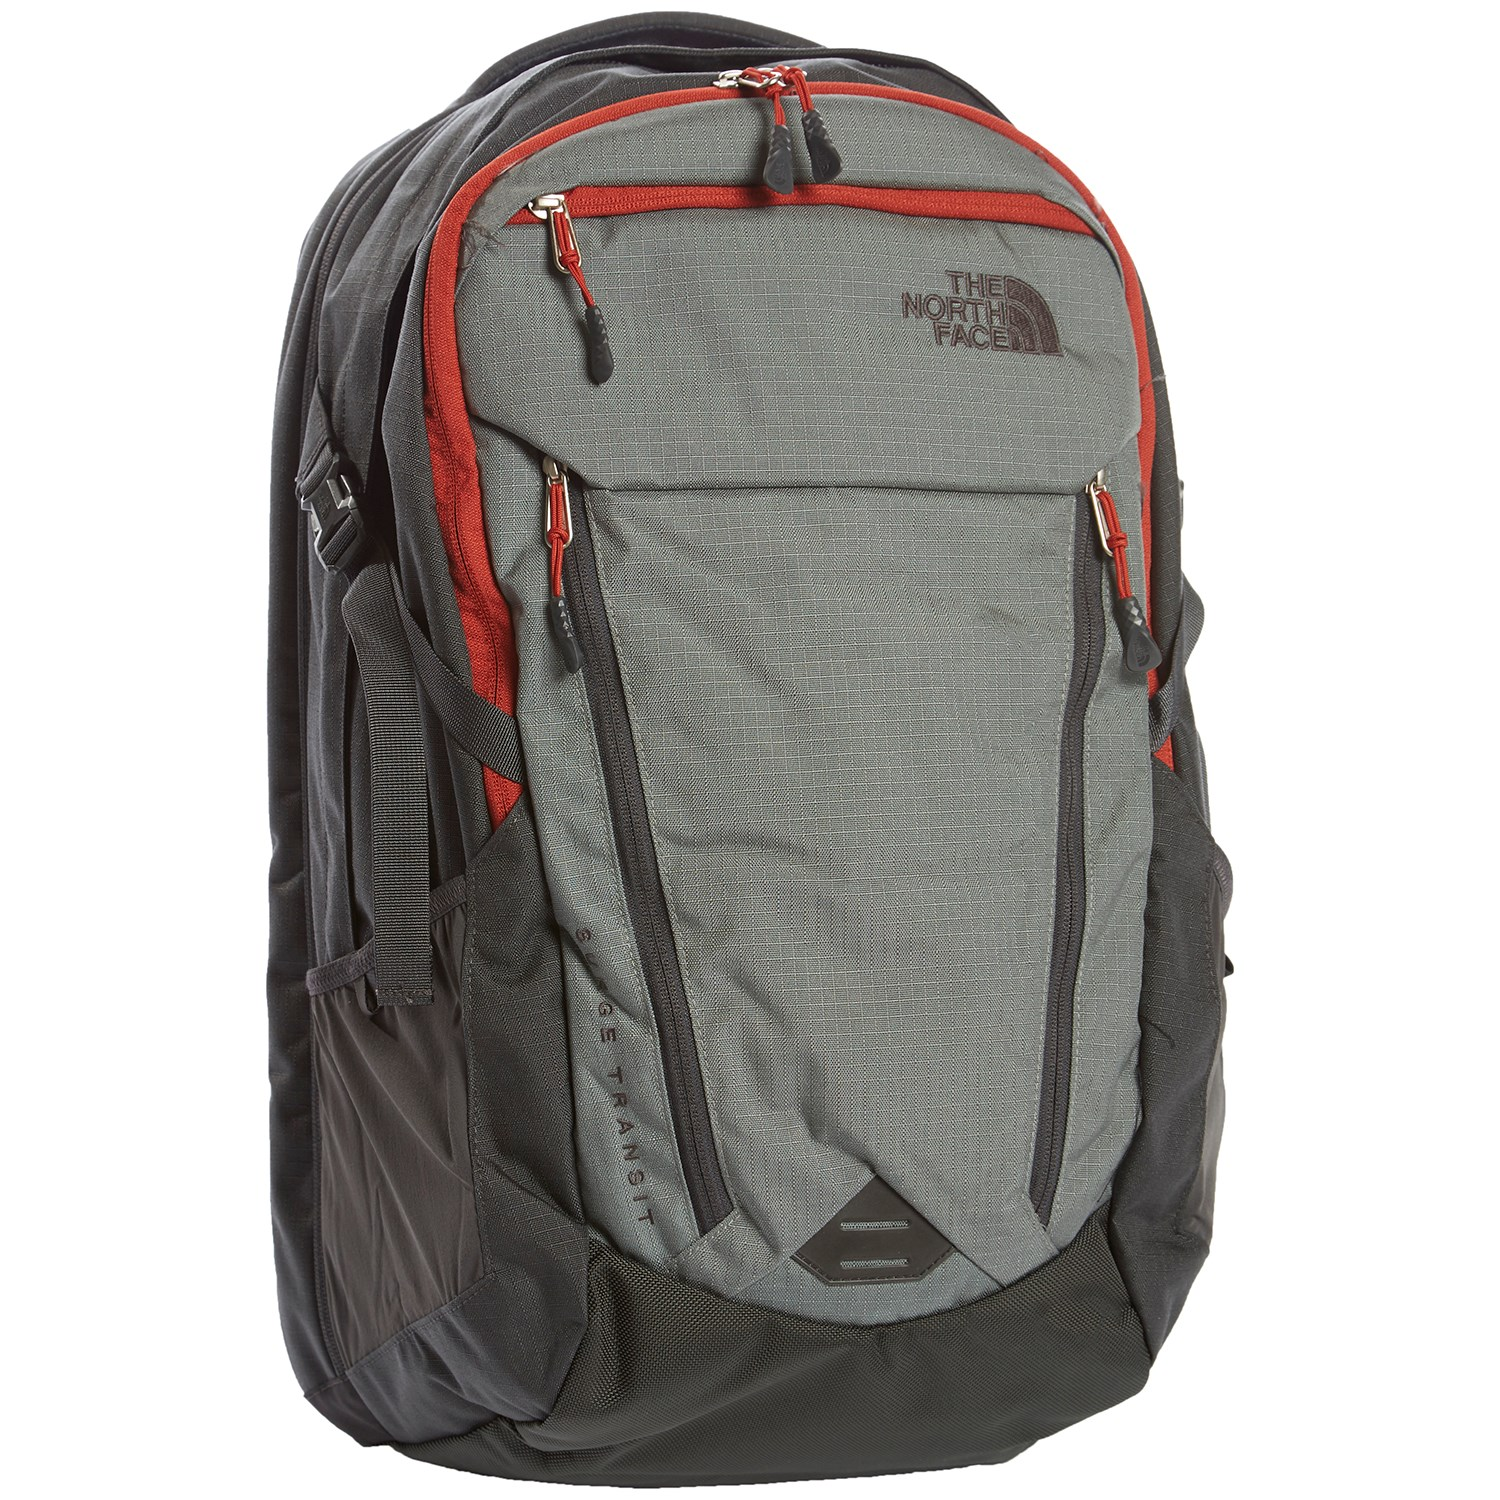 922b0389c The North Face Surge Transit Backpack